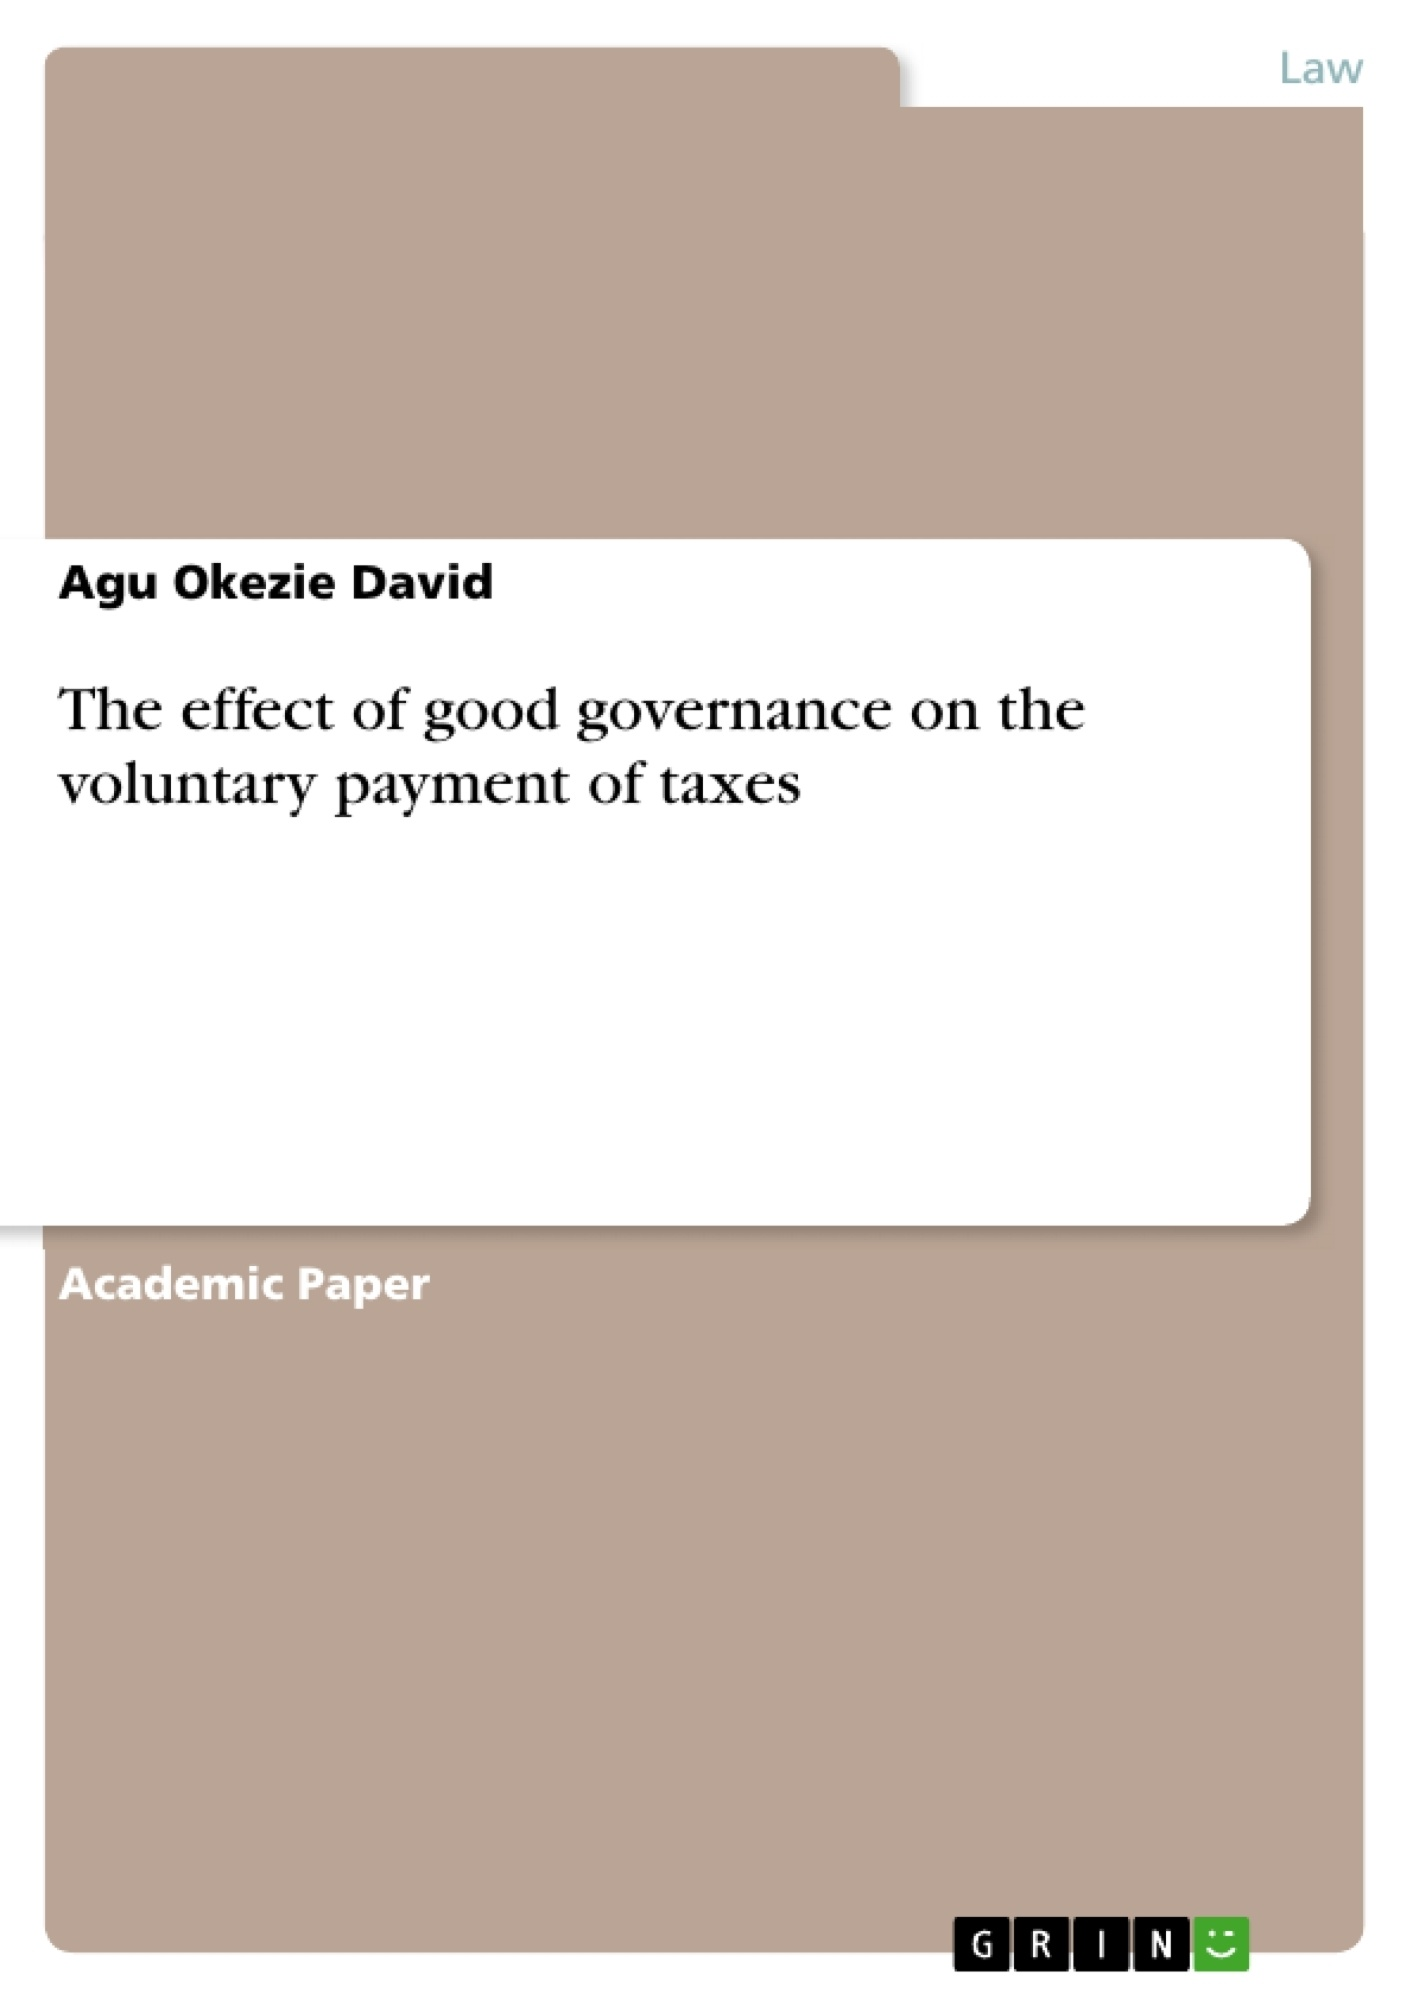 Title: The effect of good governance on the voluntary payment of taxes